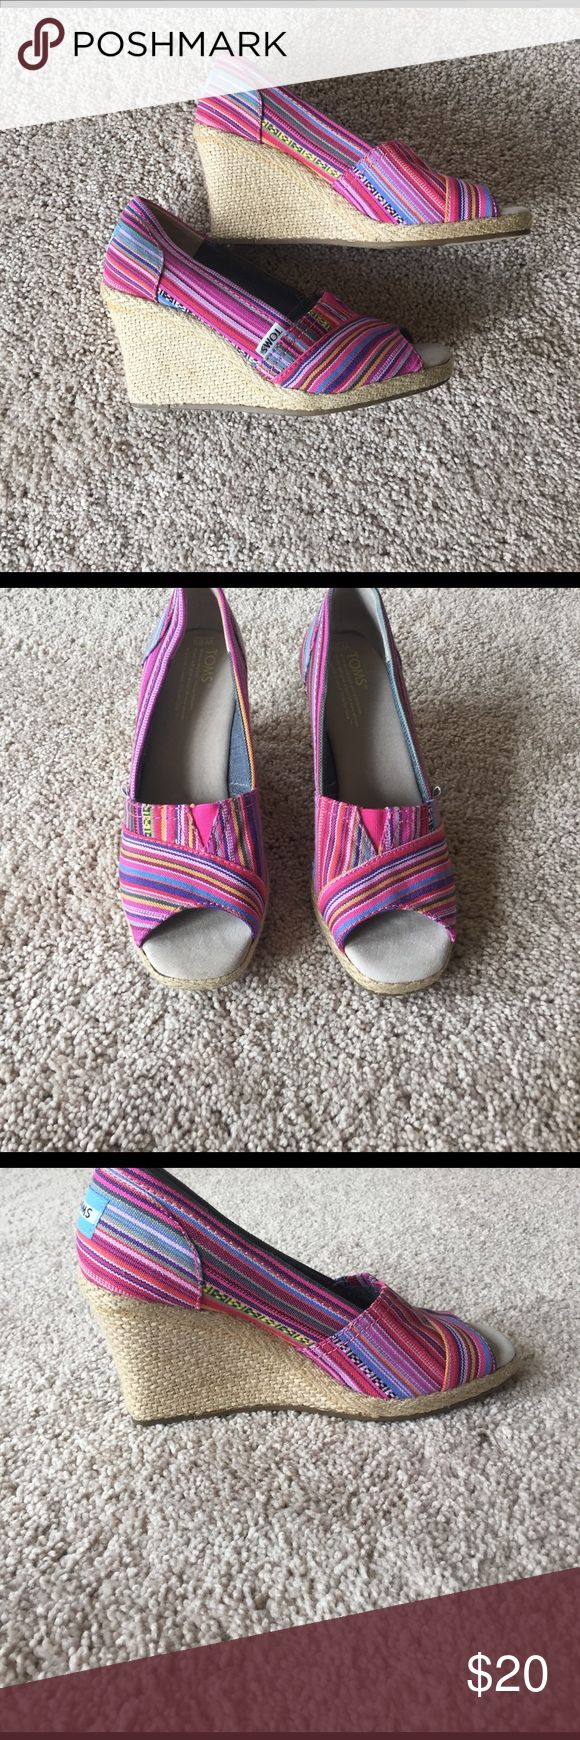 Pink Striped Wedges Adorable wedges! 3' heel and very comfy. Fits both wide and narrow feet! TOMS Shoes Wedges